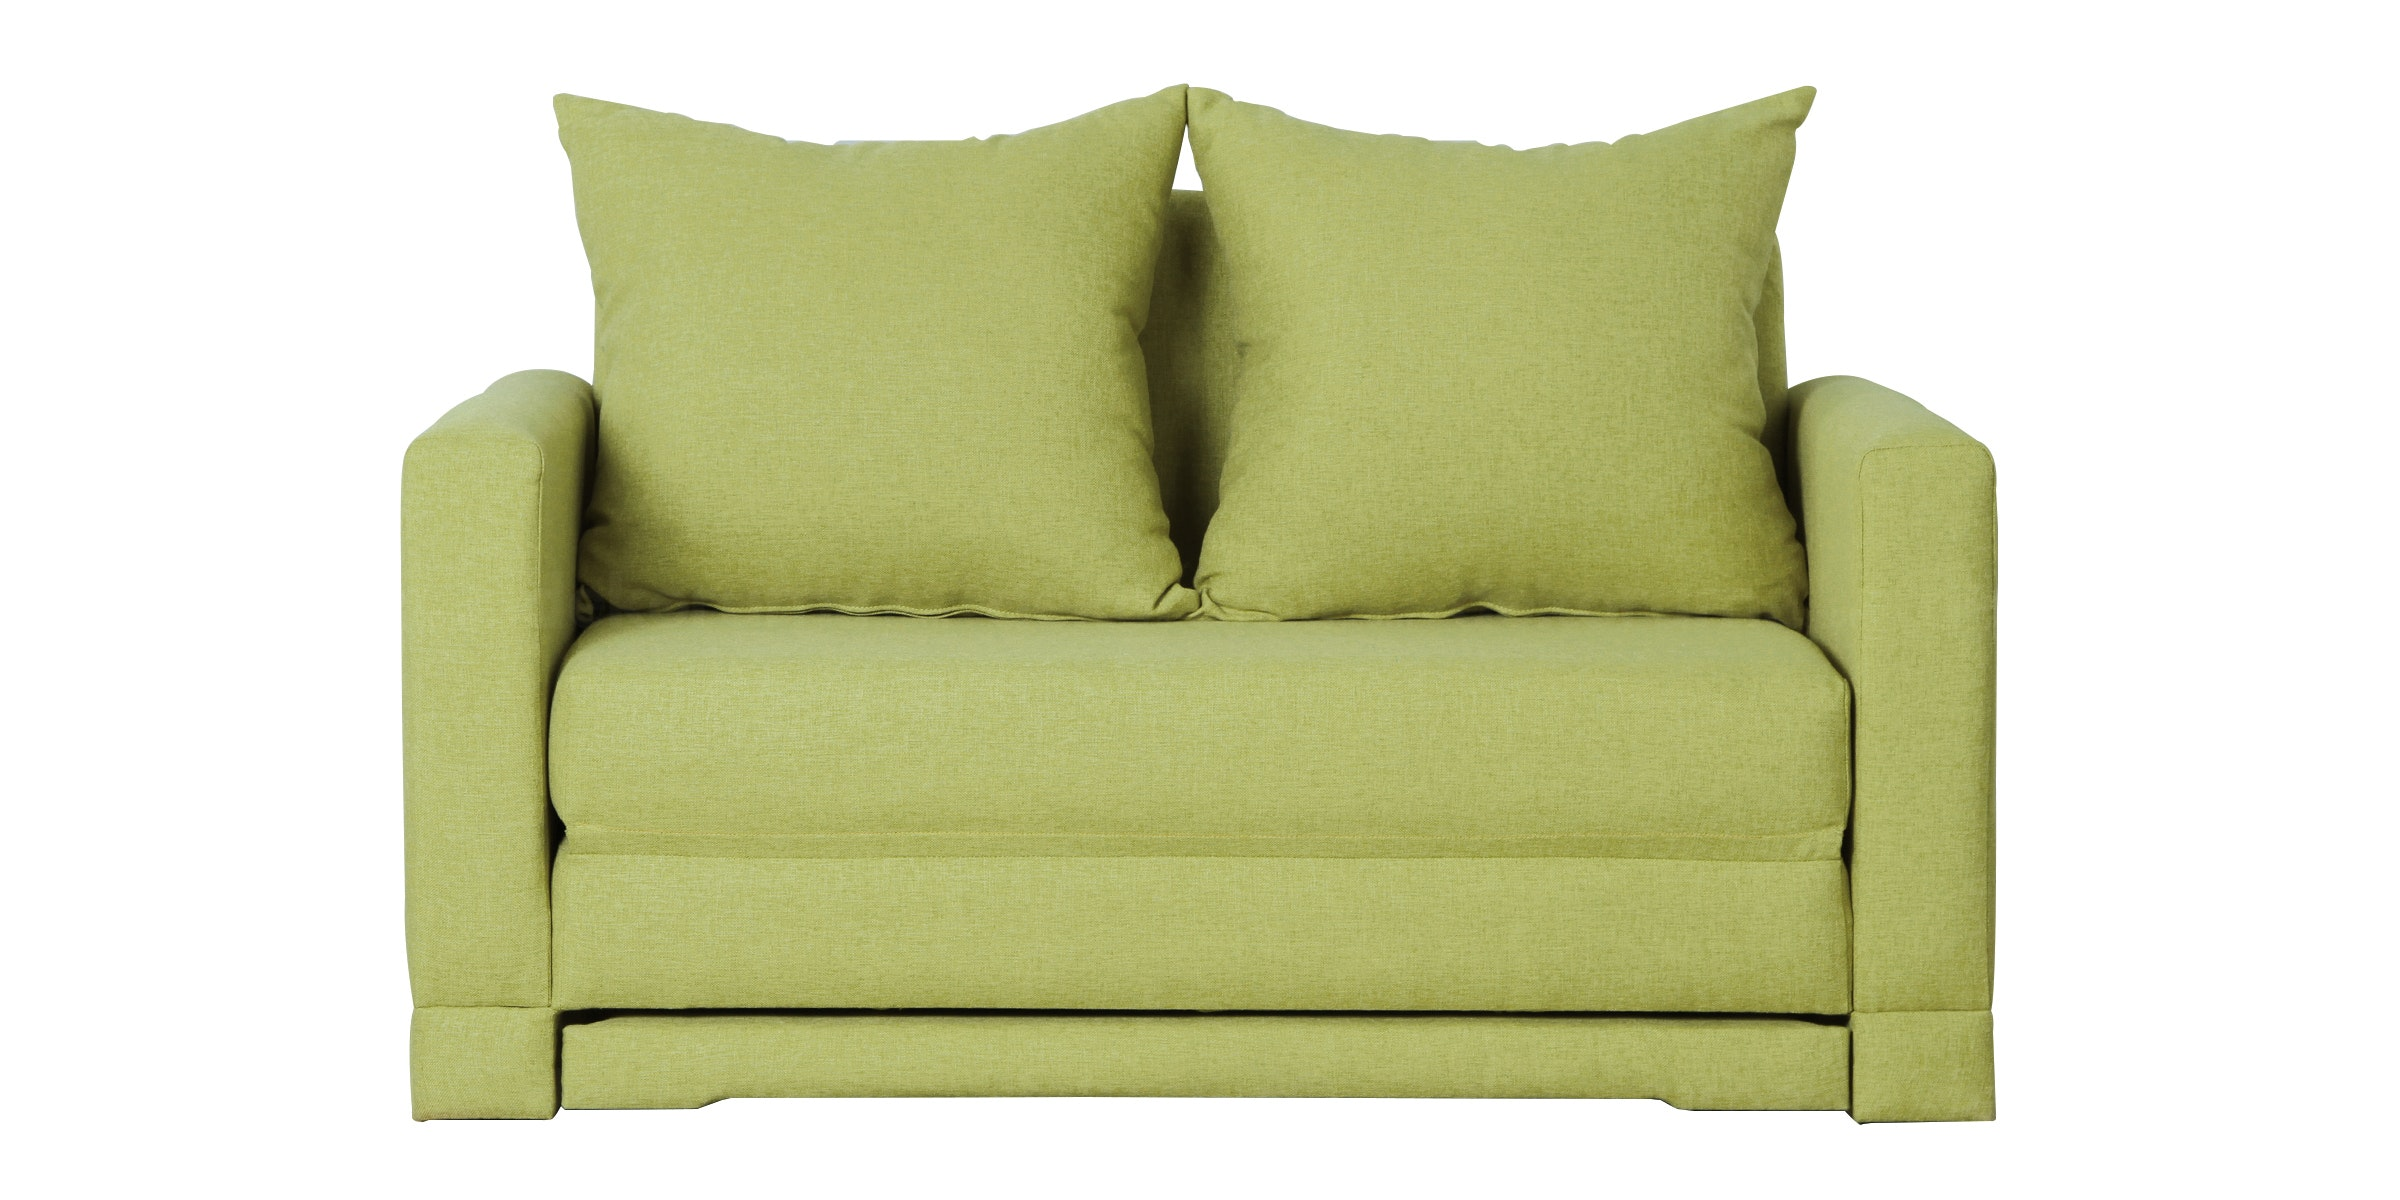 Voda Collection Fernando Sofa Bed Kuning Kiwi